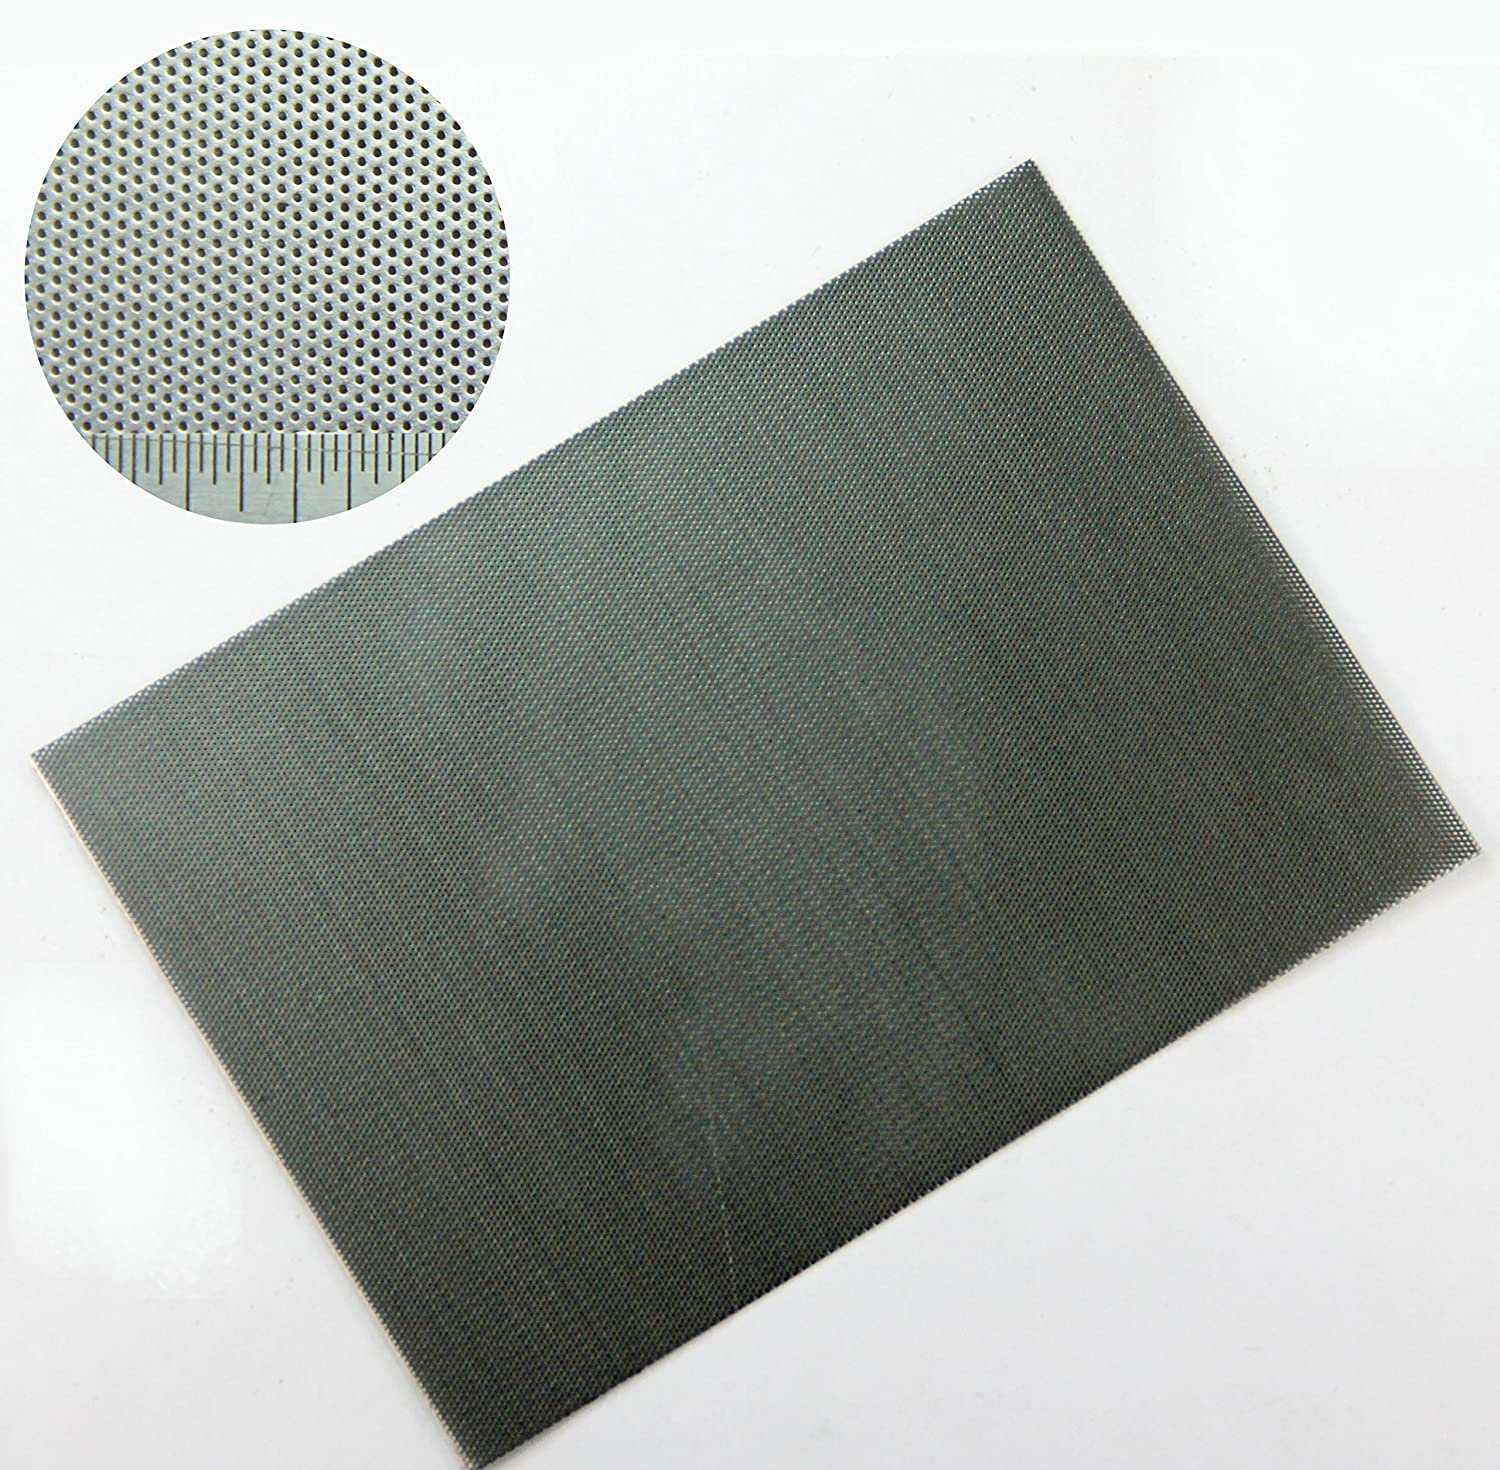 0.5mm Hole Mild Steel Perforated Mesh Sheet - 1.09mm Pitch- 0.5mm Thickness - A5 Sample Sheet 150 x 210mm The Mesh Company